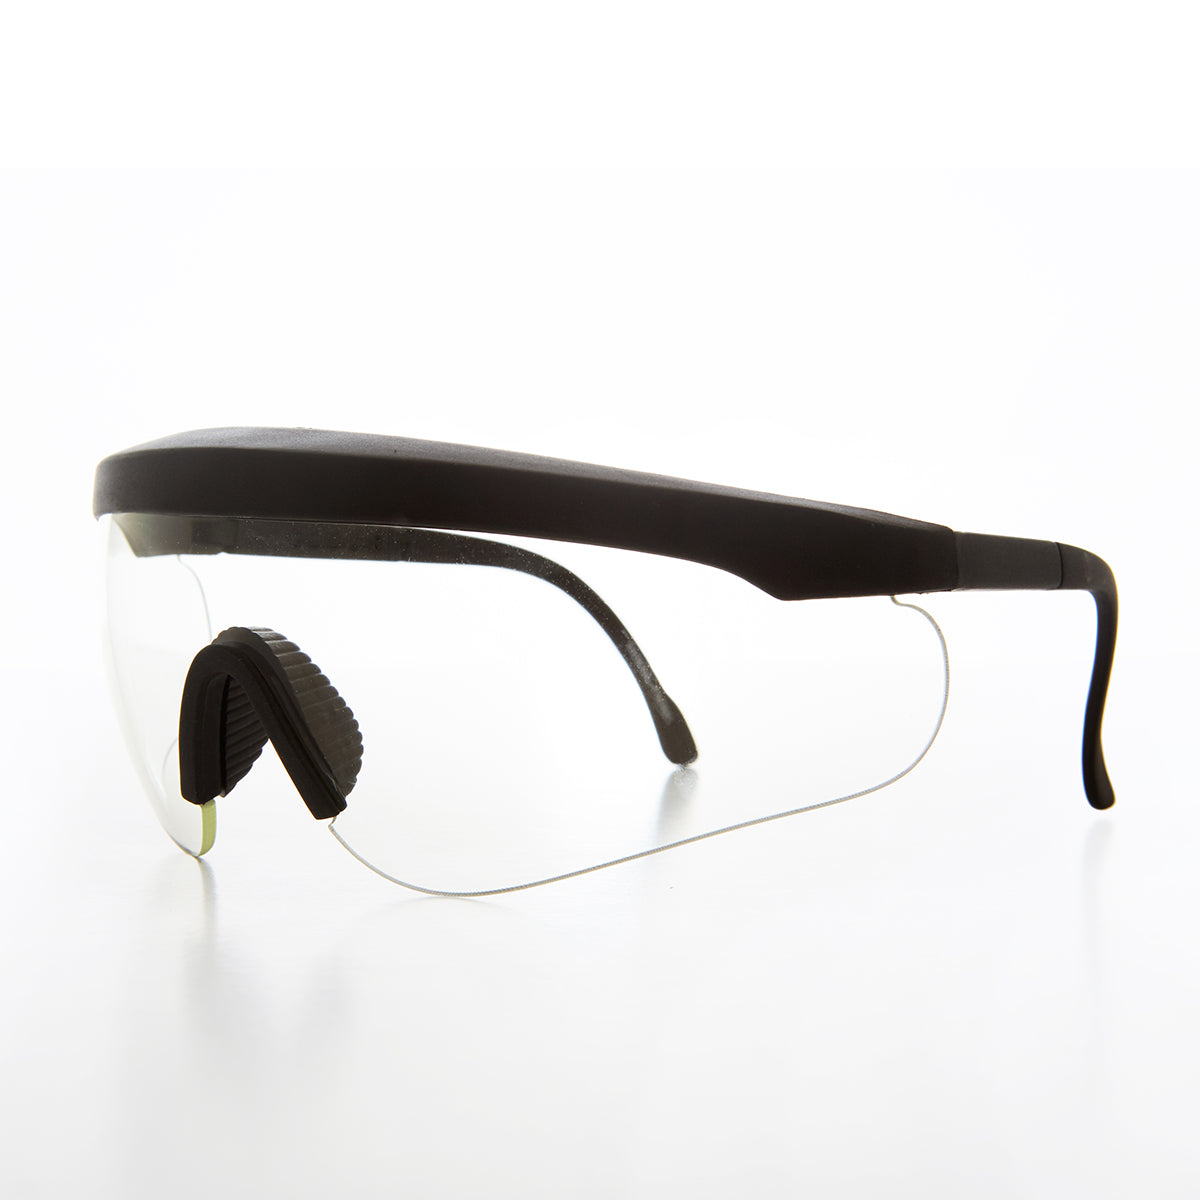 Safety Shield Protective Eyewear